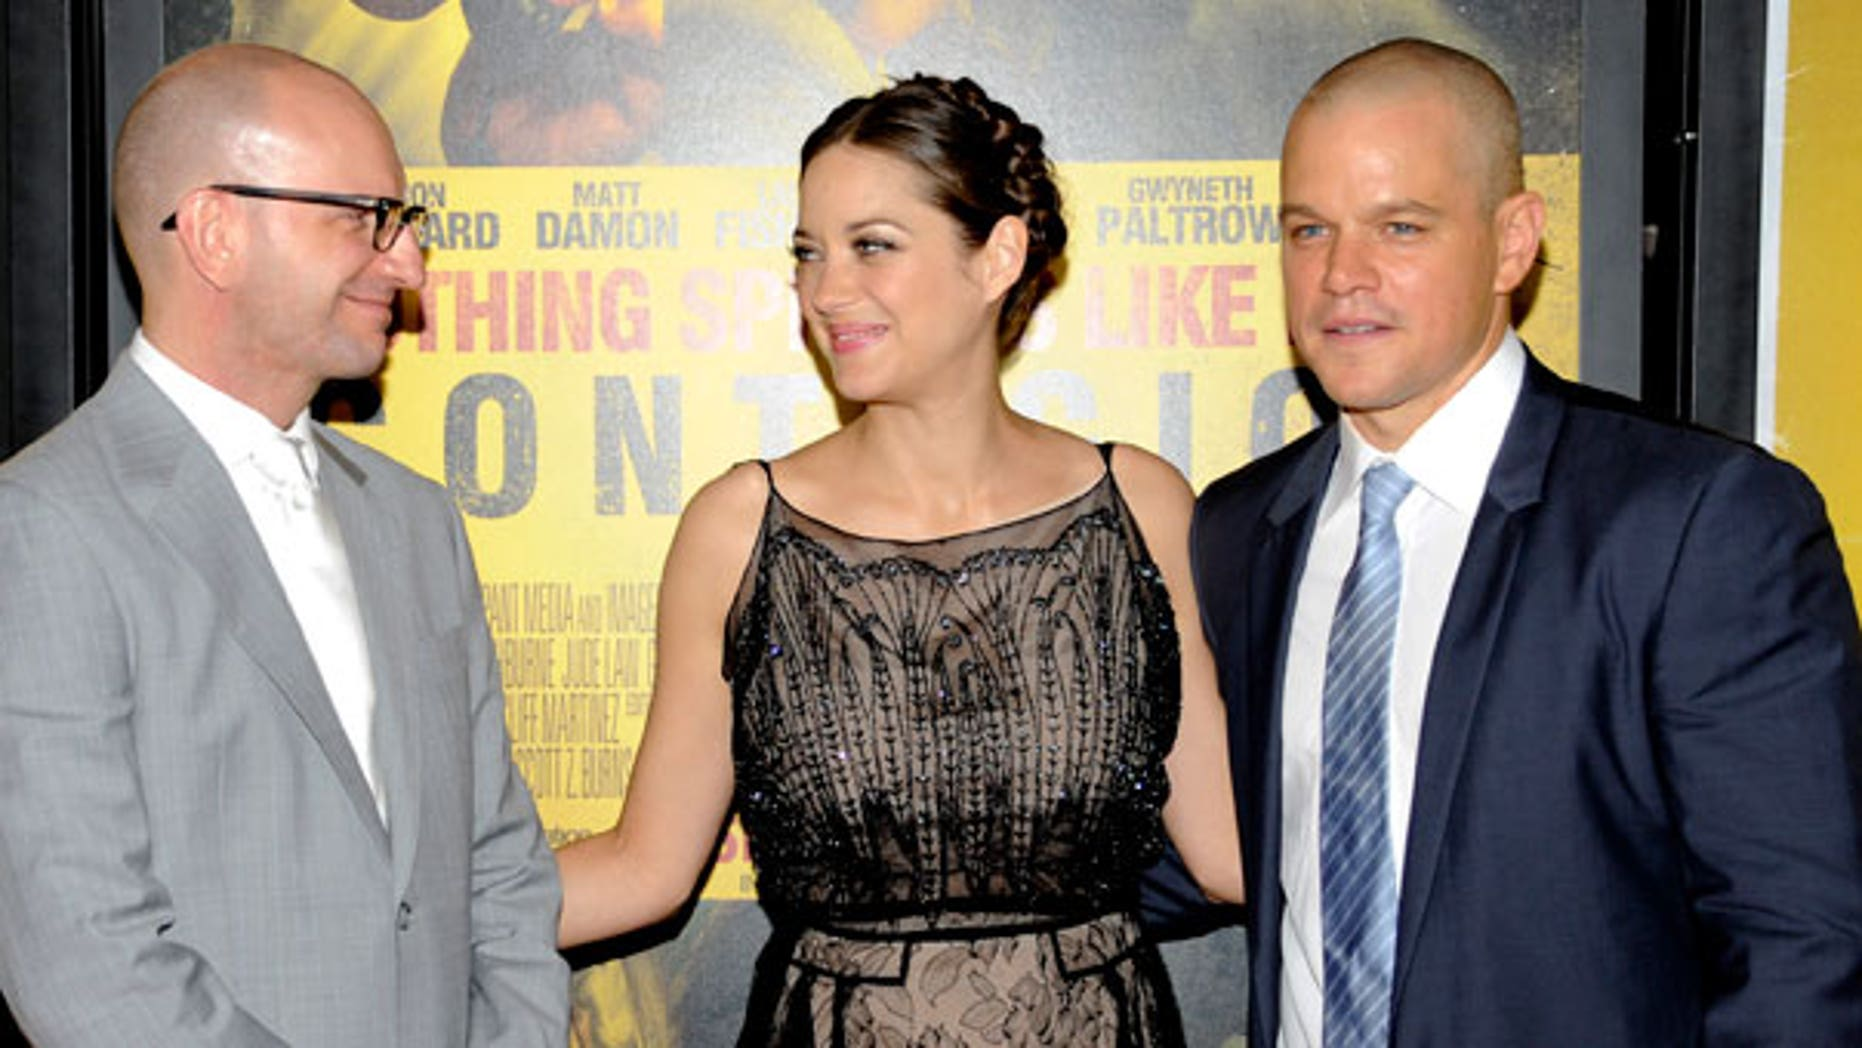 Sept. 7: Director Steven Soderbergh, actress Marion Cotillard and actor Matt Damon attend the premiere of 'Contagion' at Jazz at Lincoln Center .